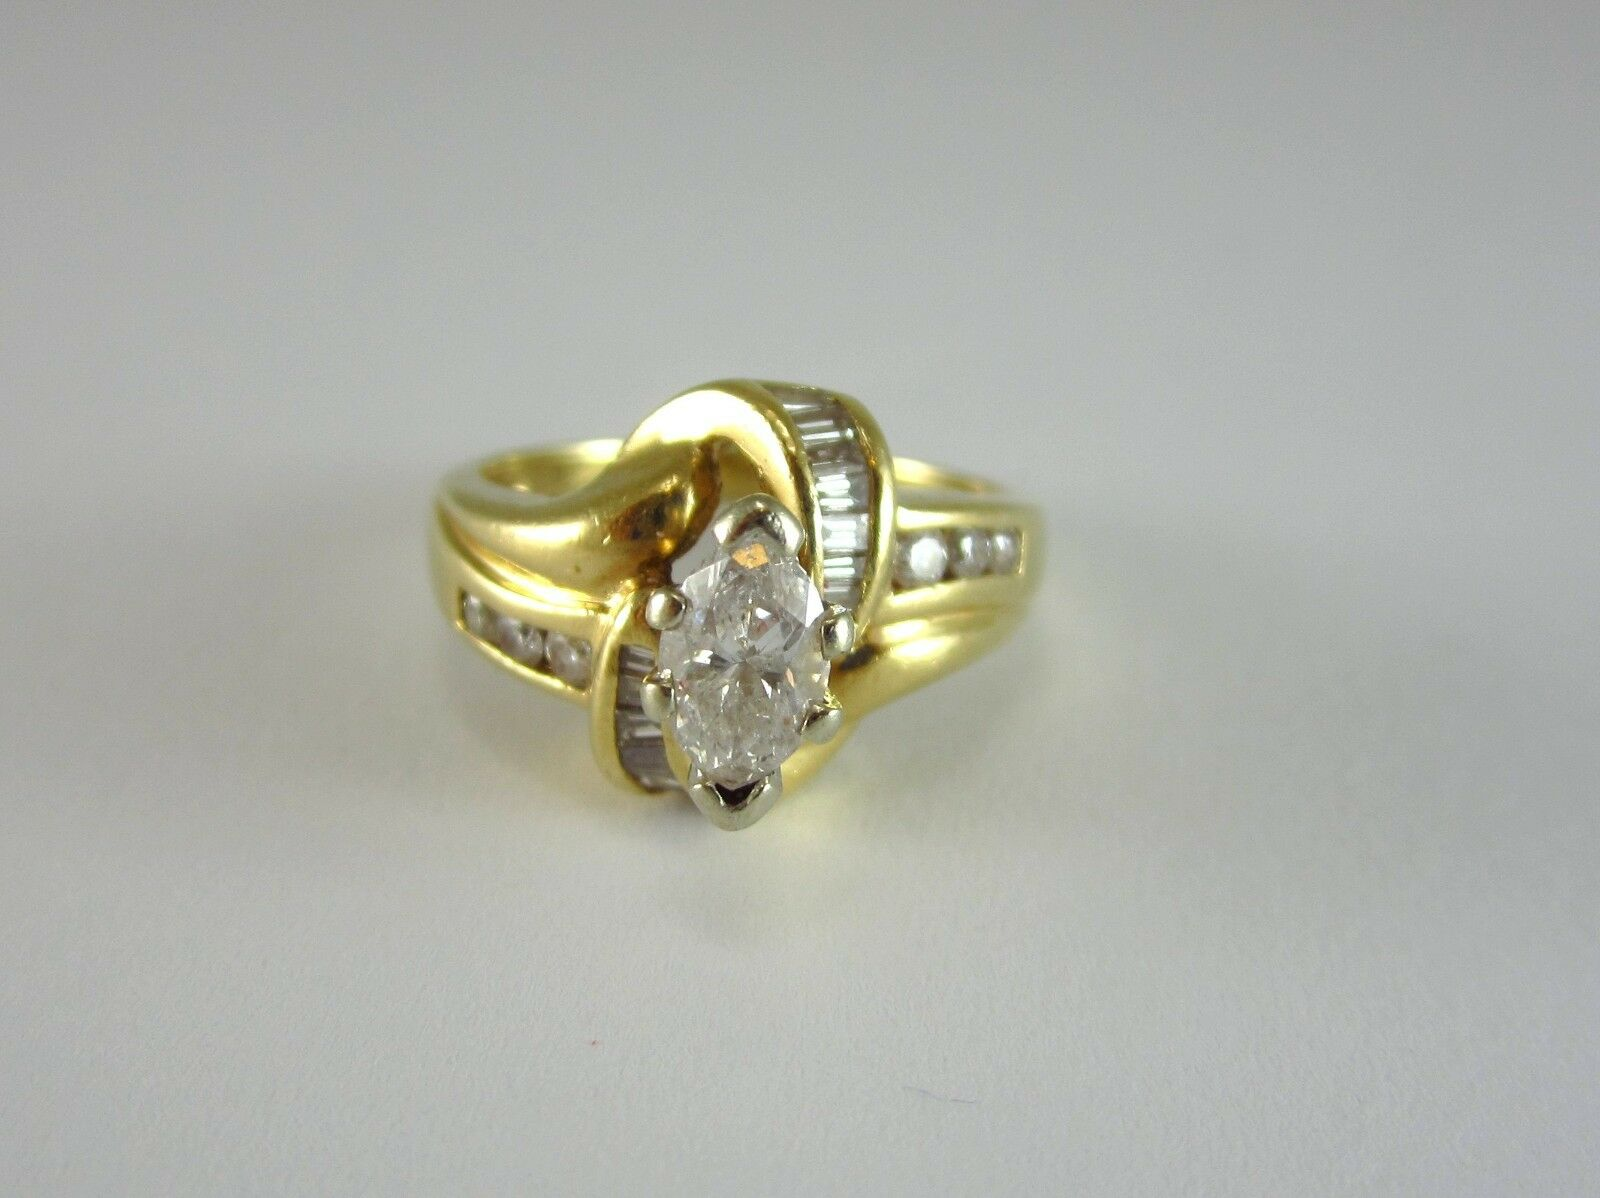 BEAUTIFUL LADIES 14K TWO-TONE gold MARQUISE CUT DIAMOND ENGAGEMENT RING 4.9G